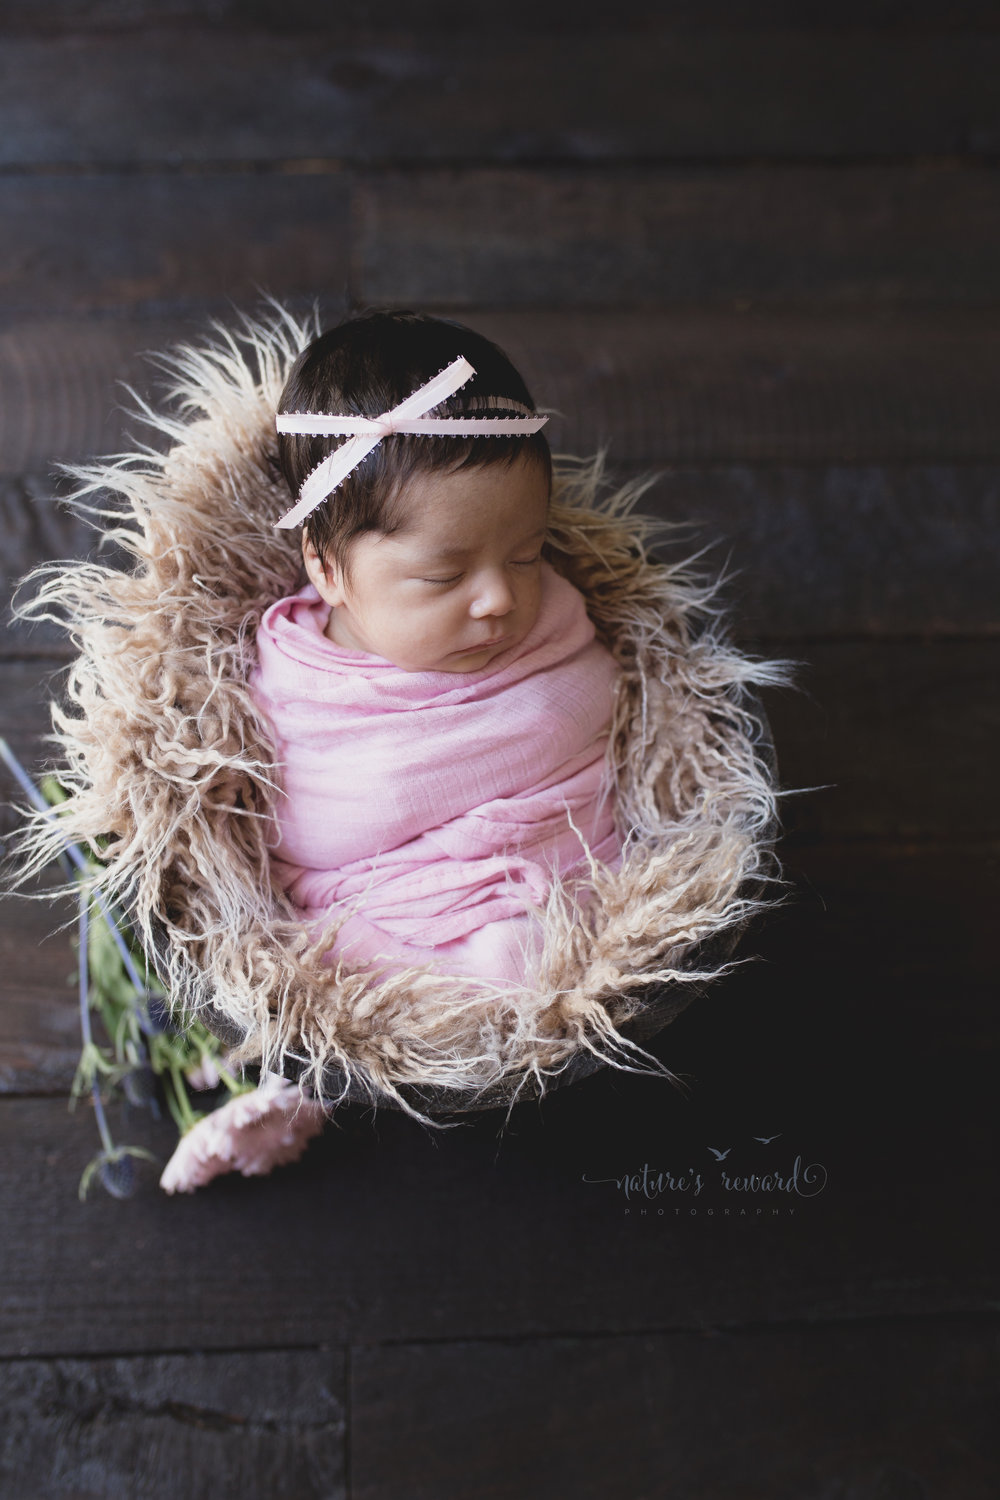 Baby in a bucket.  She is wrapped in her own newborn wrap.  She was unsettled so we wrapped her in a blanket that smelled of her and her mother.  The pink.  Pink ribbon in her hair, and pink carnation adorn the floor in this newborn image. Image by Nature's Reward Photography